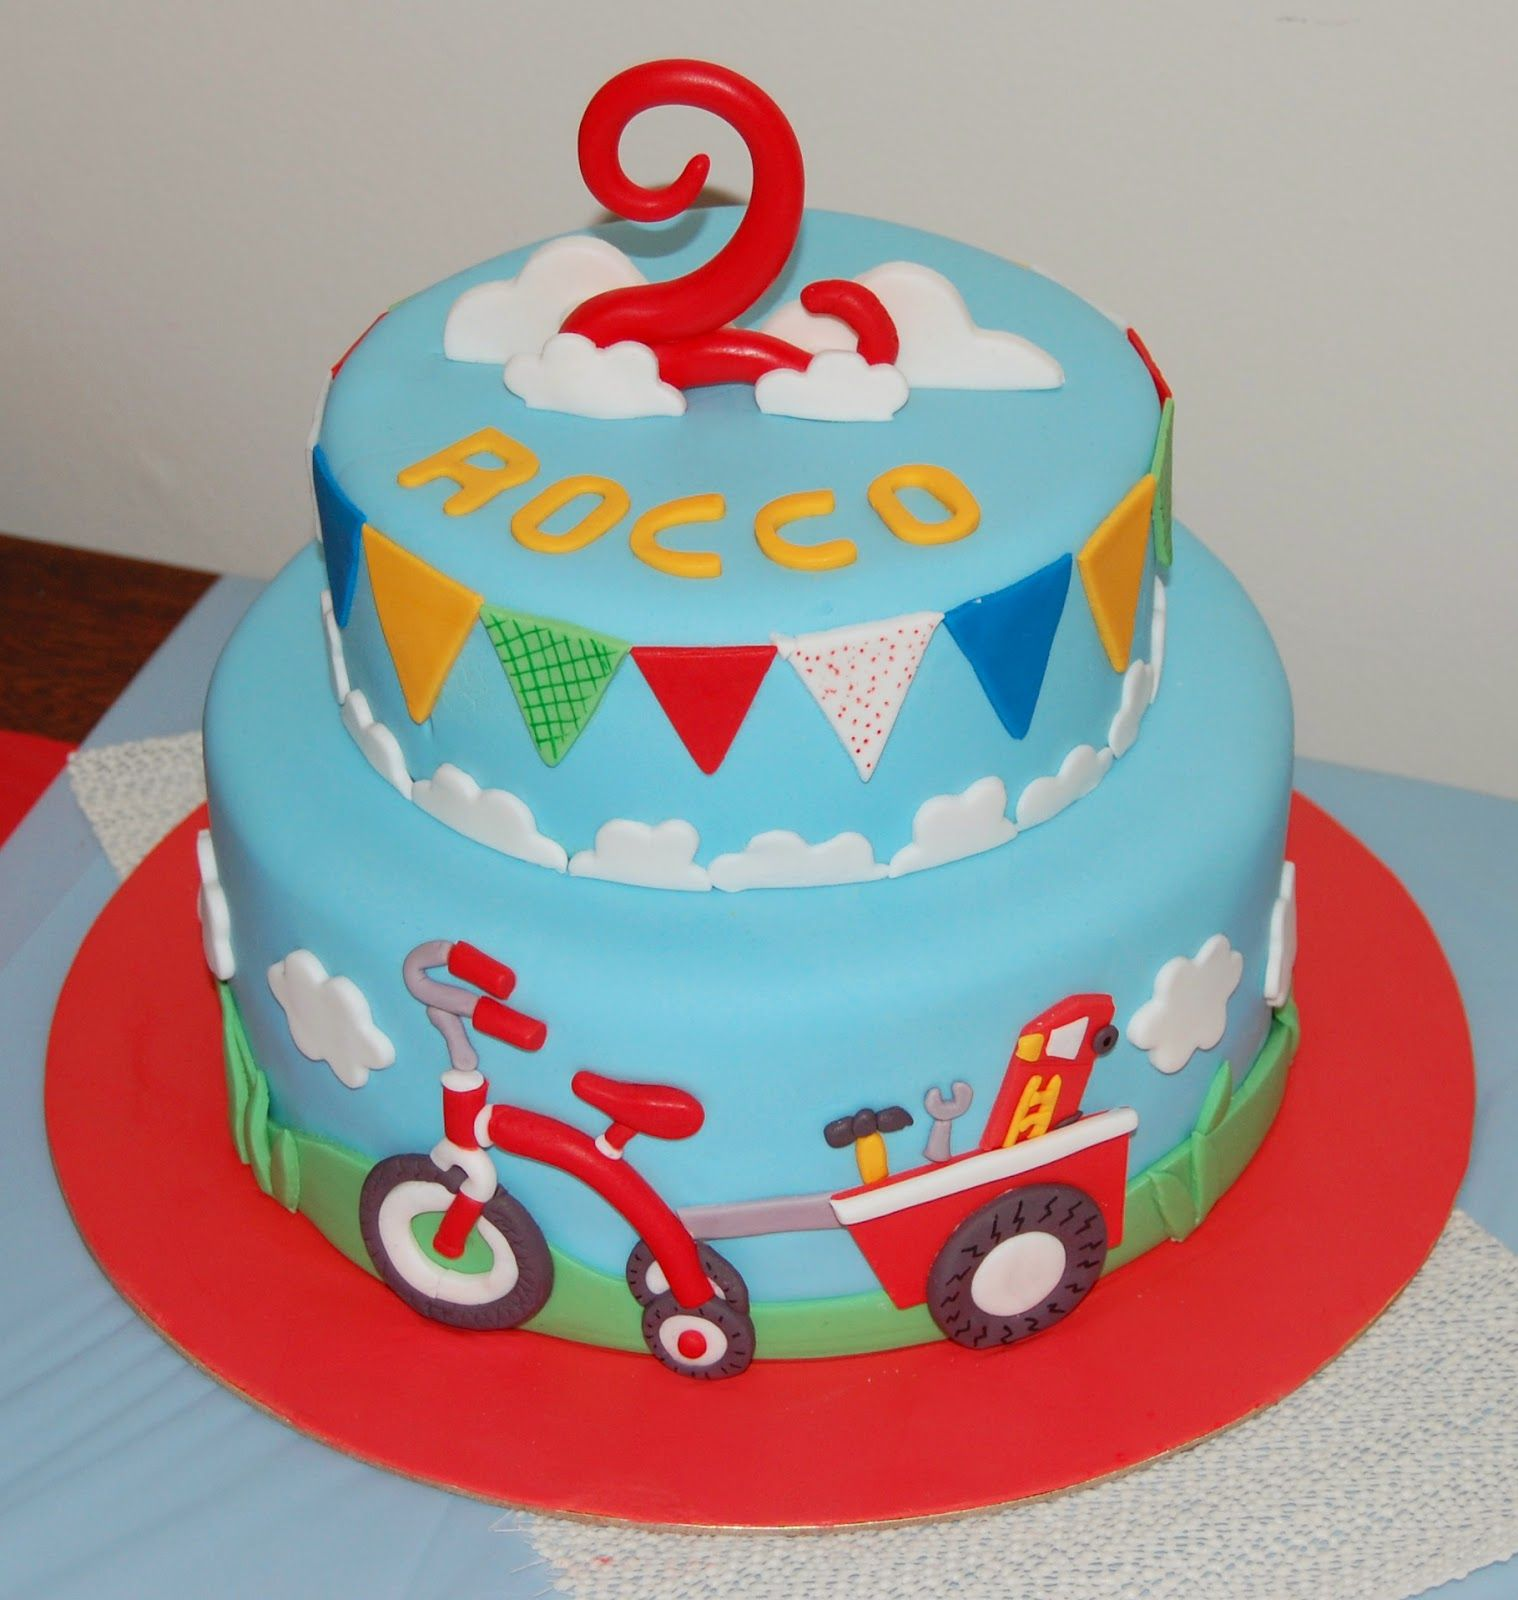 Cake For A Little Boys 2nd Birthday. The Inspiration For The Cake